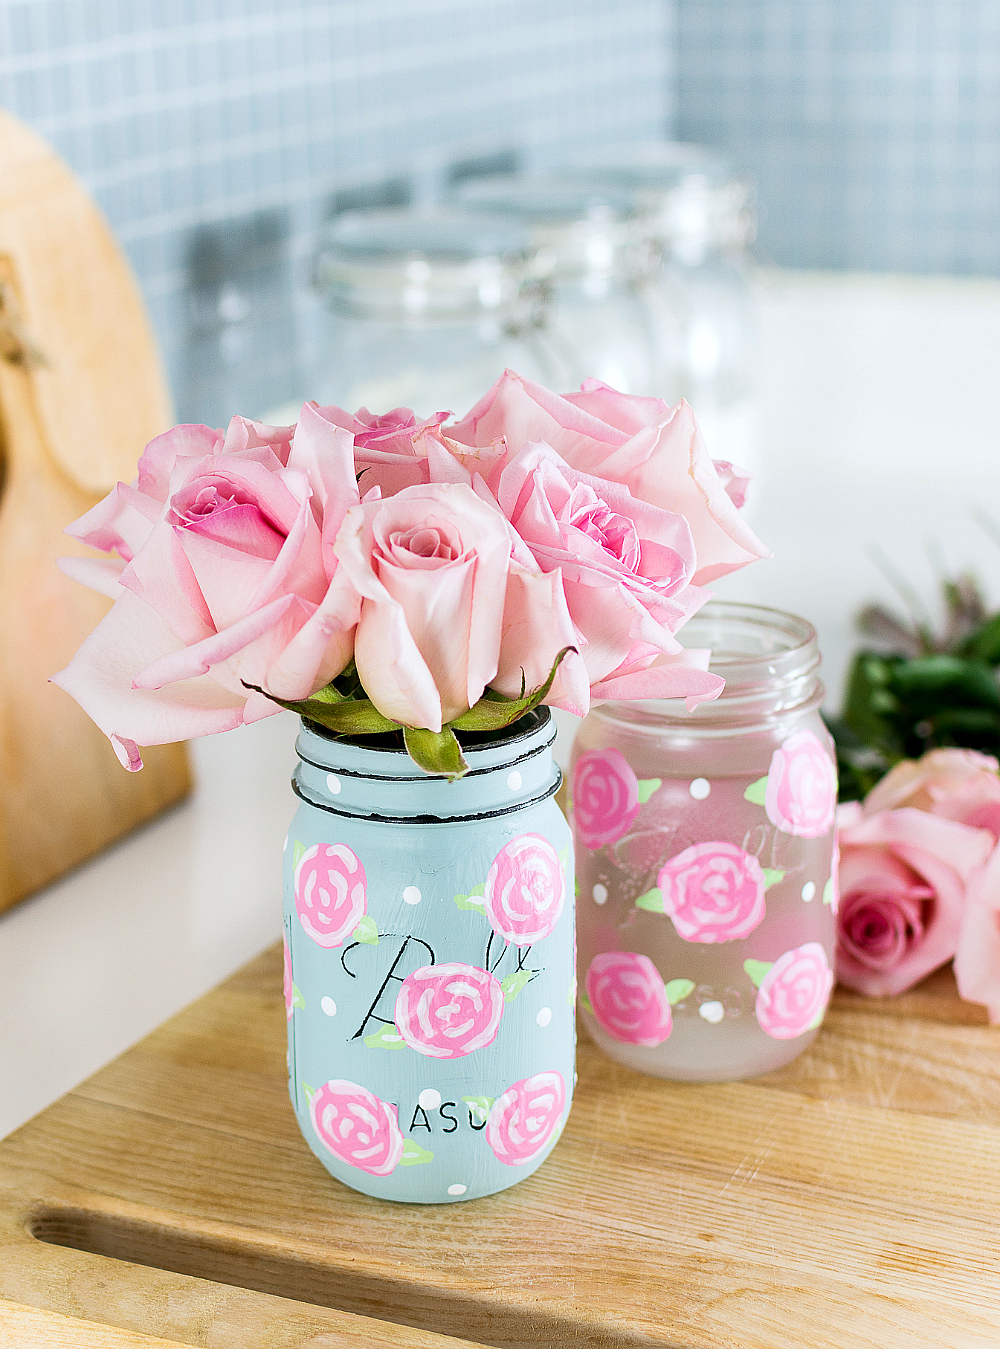 Painted Rose Mason Jars - How To Paint a Rose Tutorial - Easy Rose Painting Tutorial @itallstartedwithpaint.com